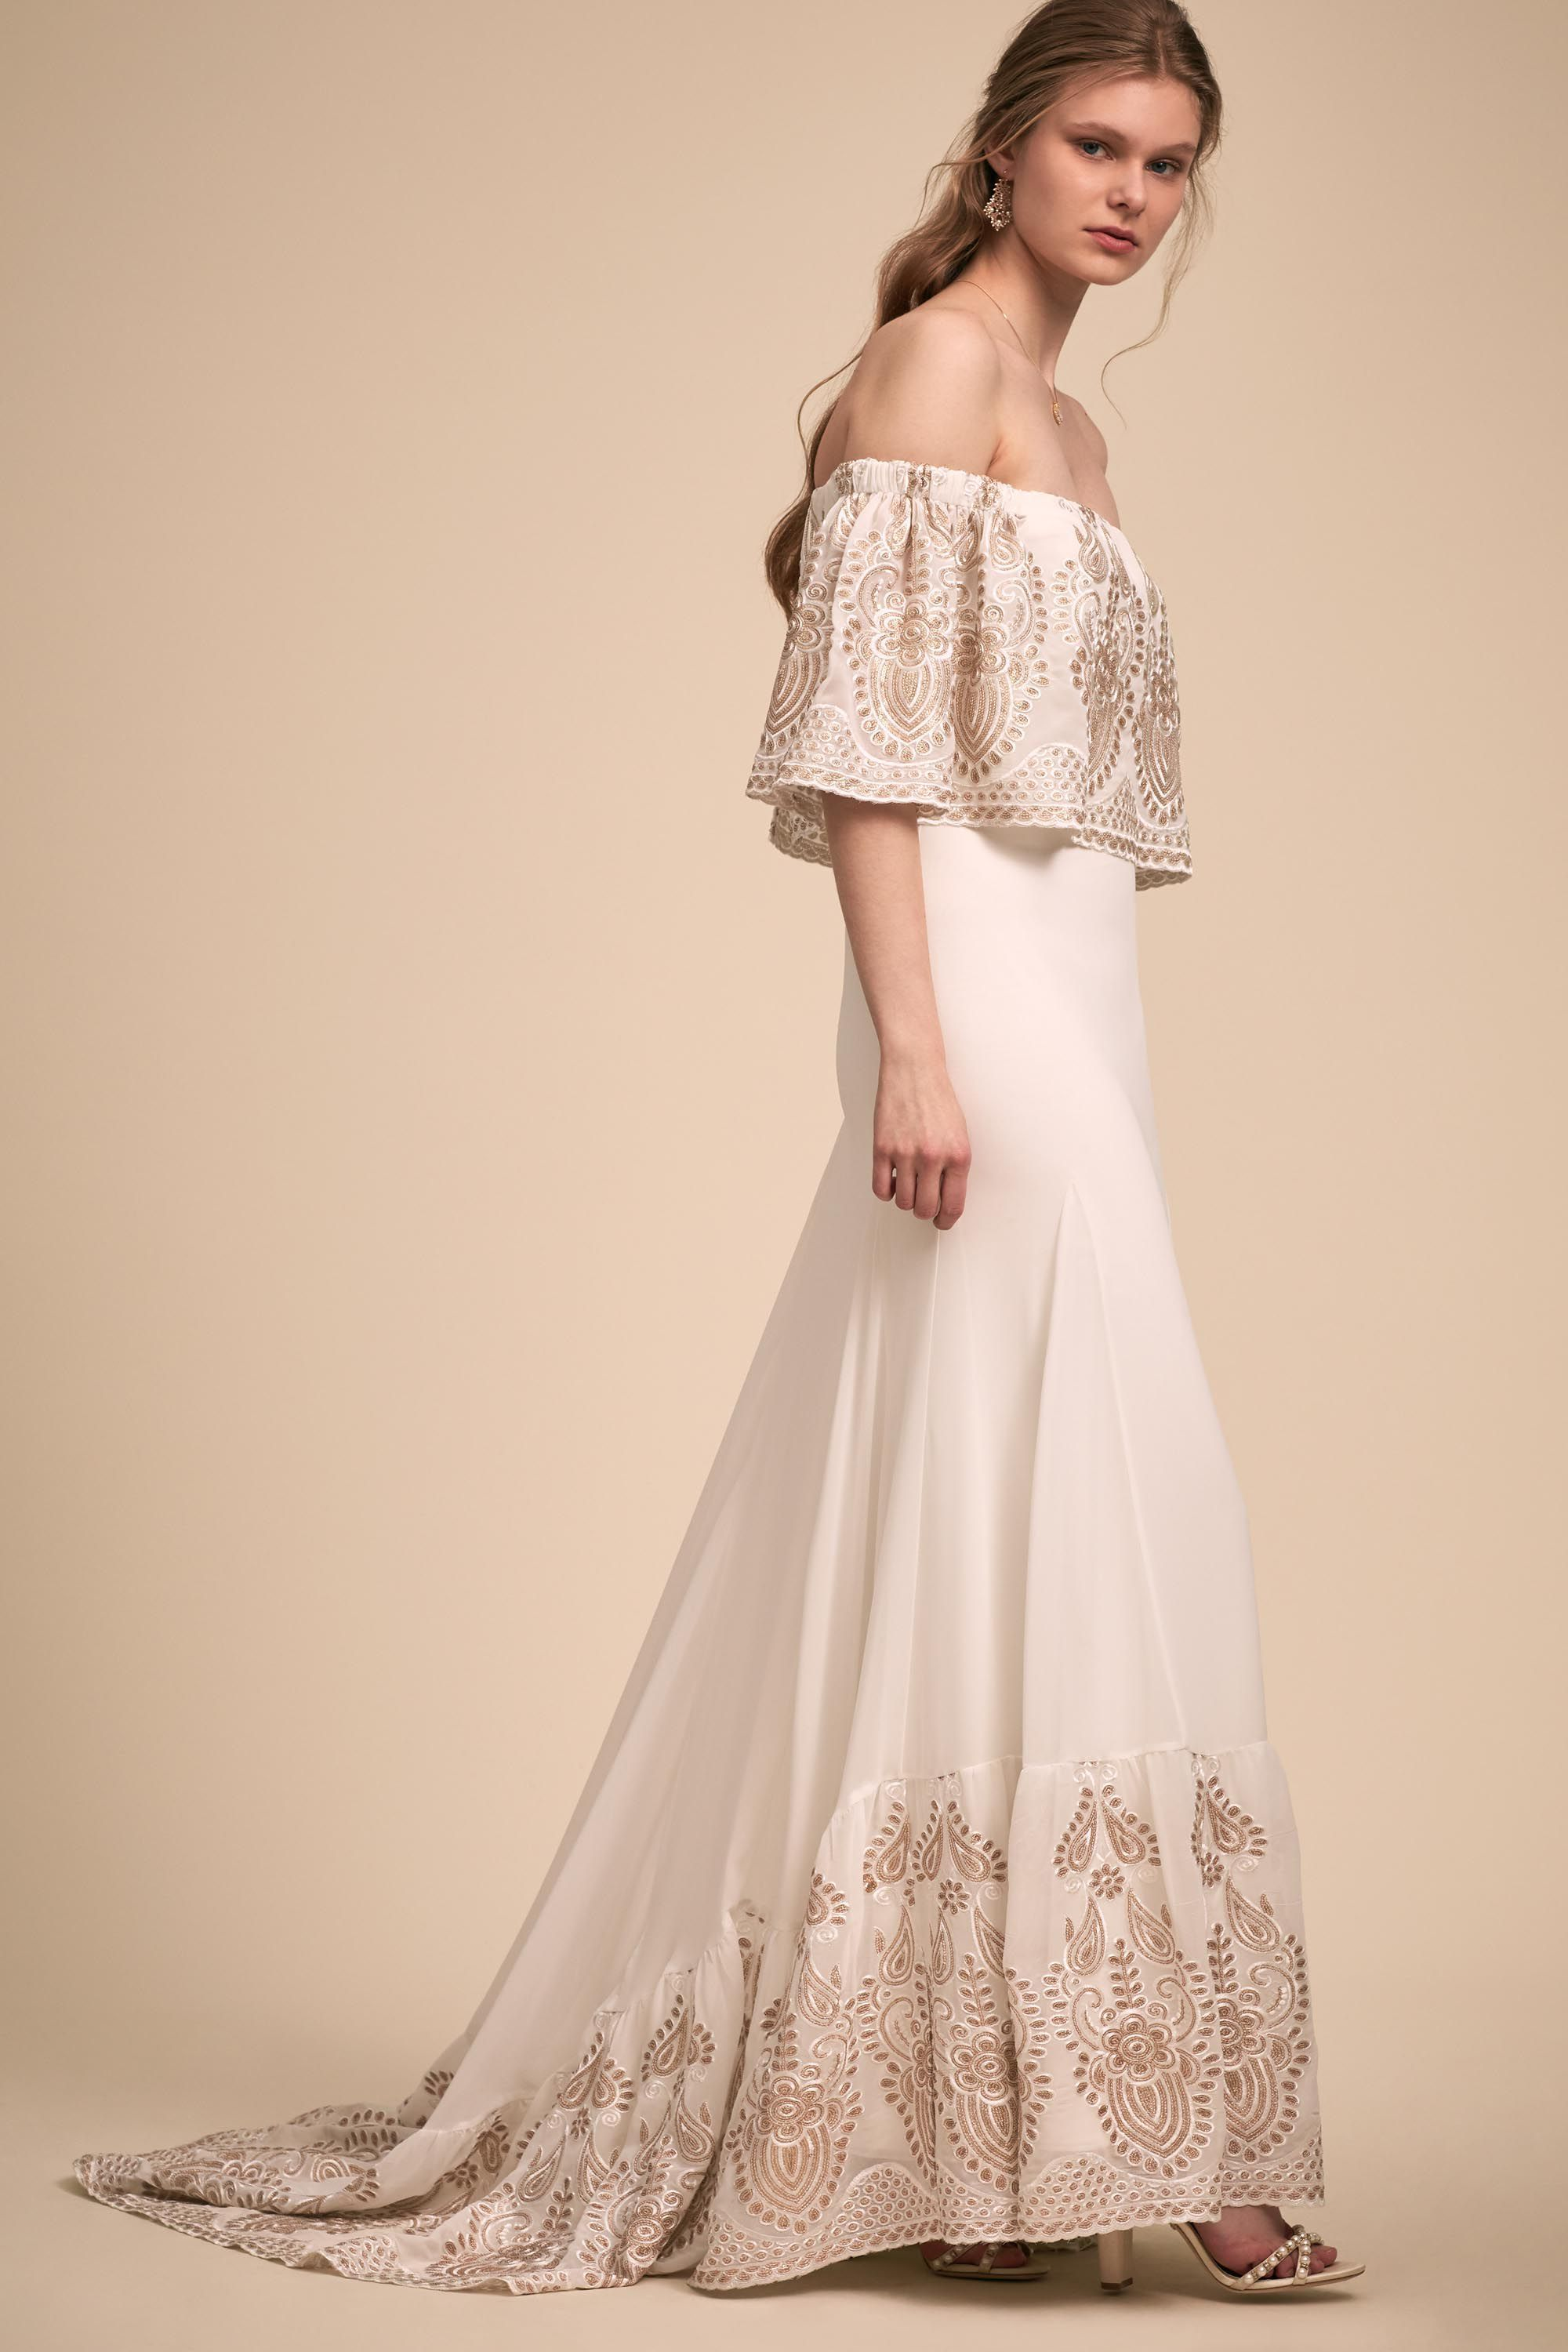 The flouncy lace overlay and hemline on this offtheshoulder gown